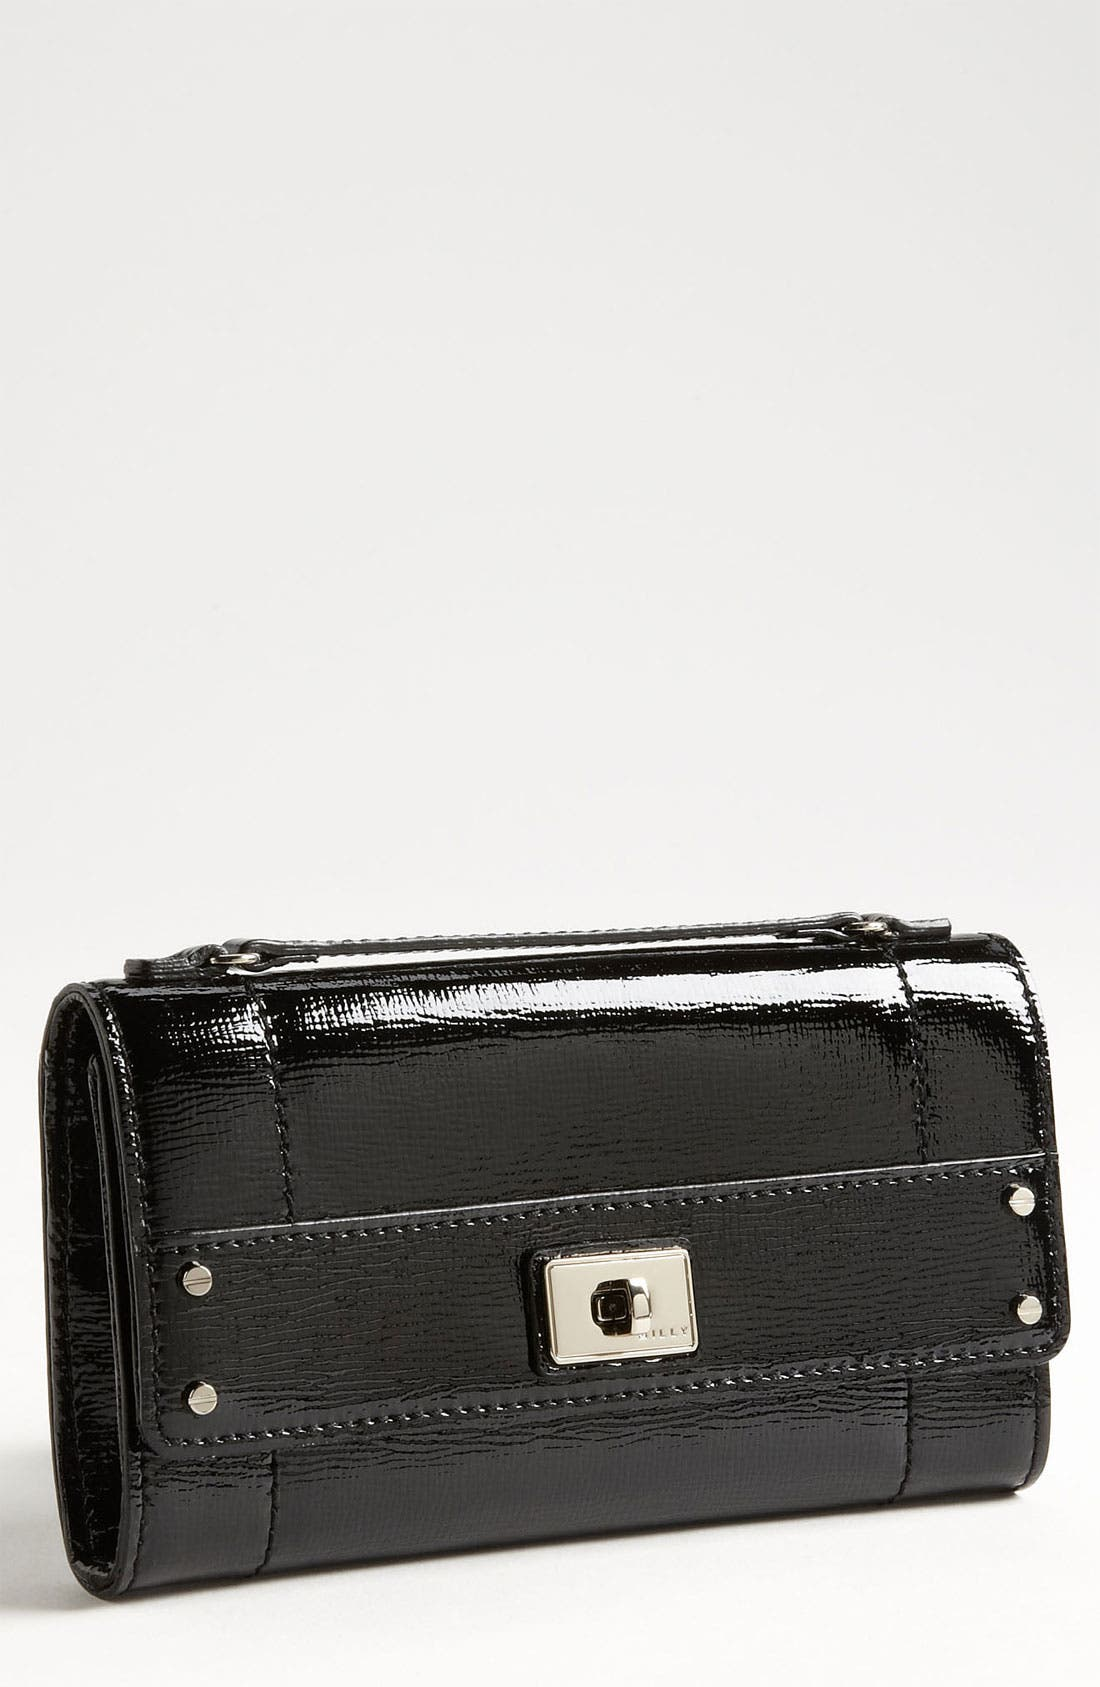 Main Image - Milly 'Colette' Patent Leather Wallet